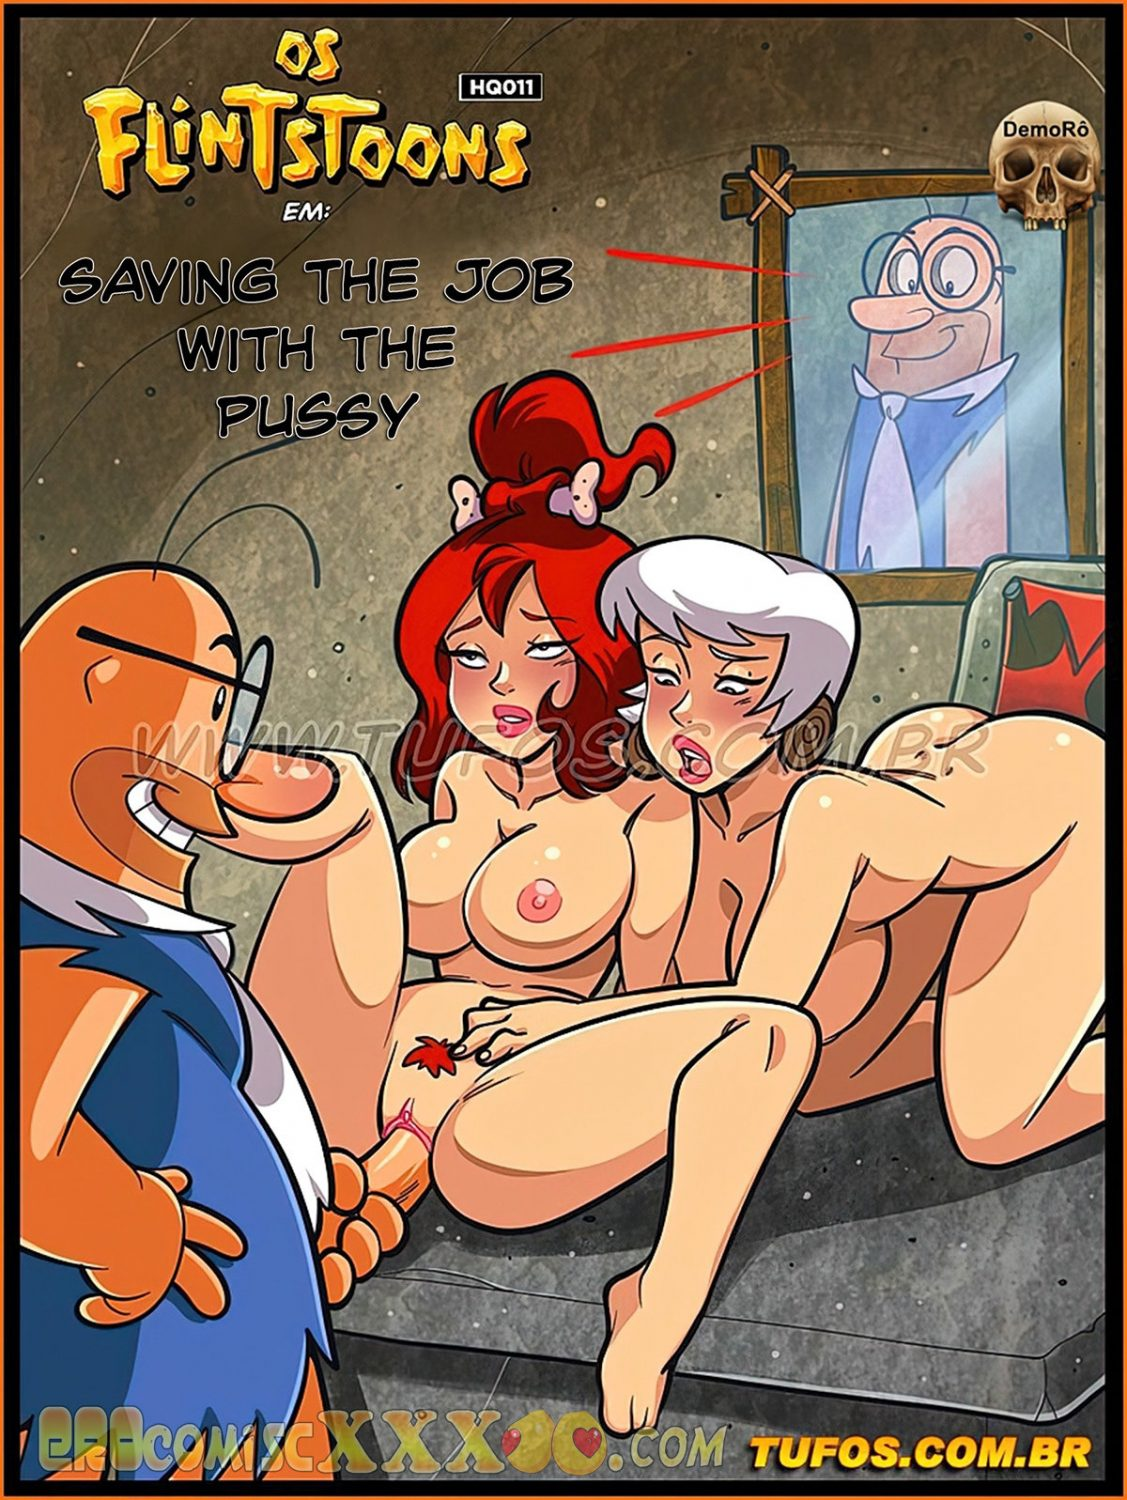 001 13 1127x1500 - The Flintstones 11. Saving The Job With The Pussy.